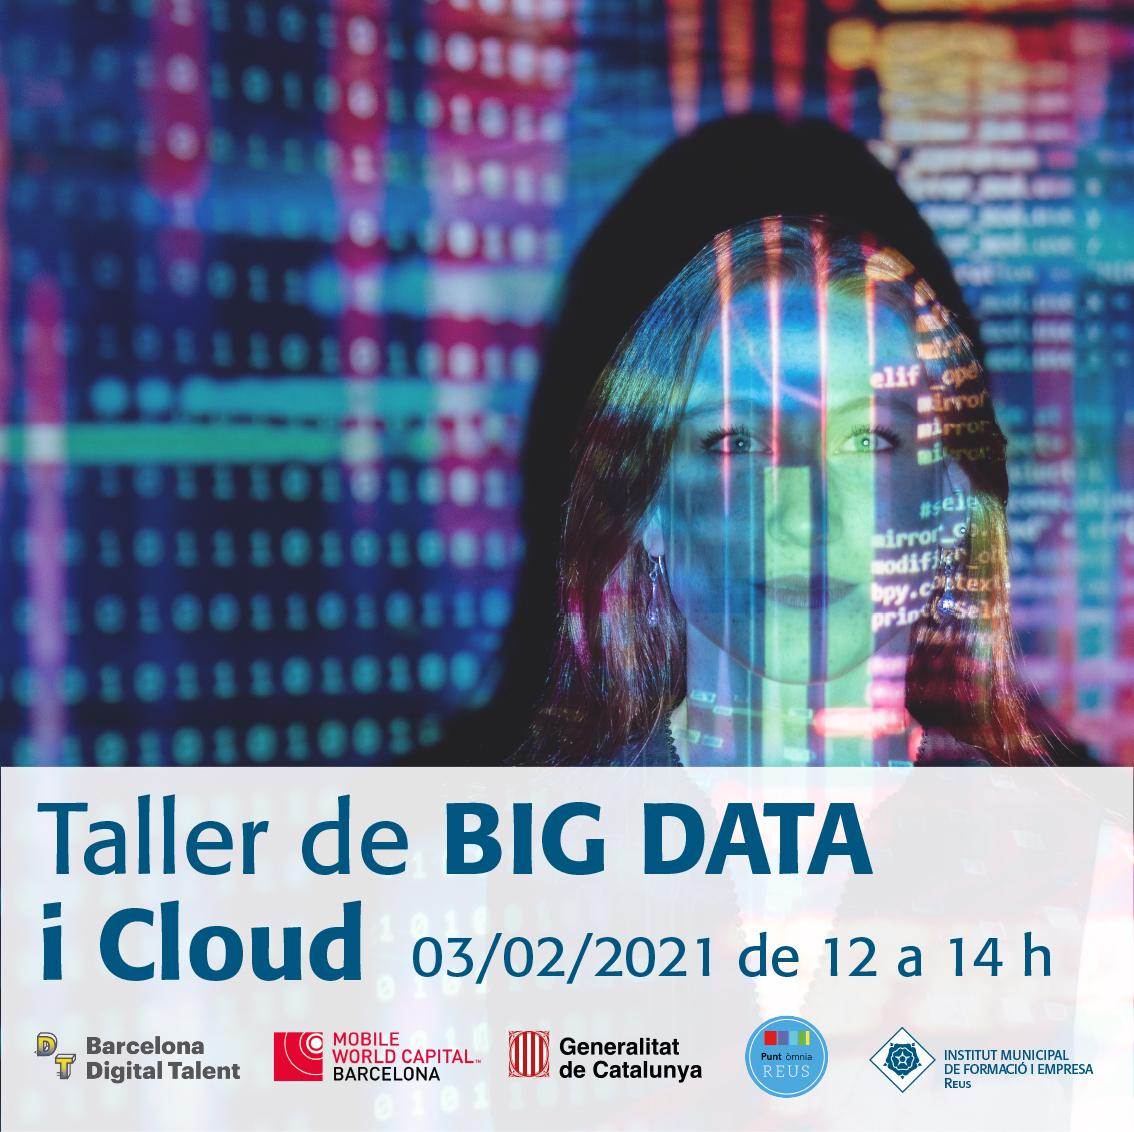 Taller de BIG DATA i CloudE